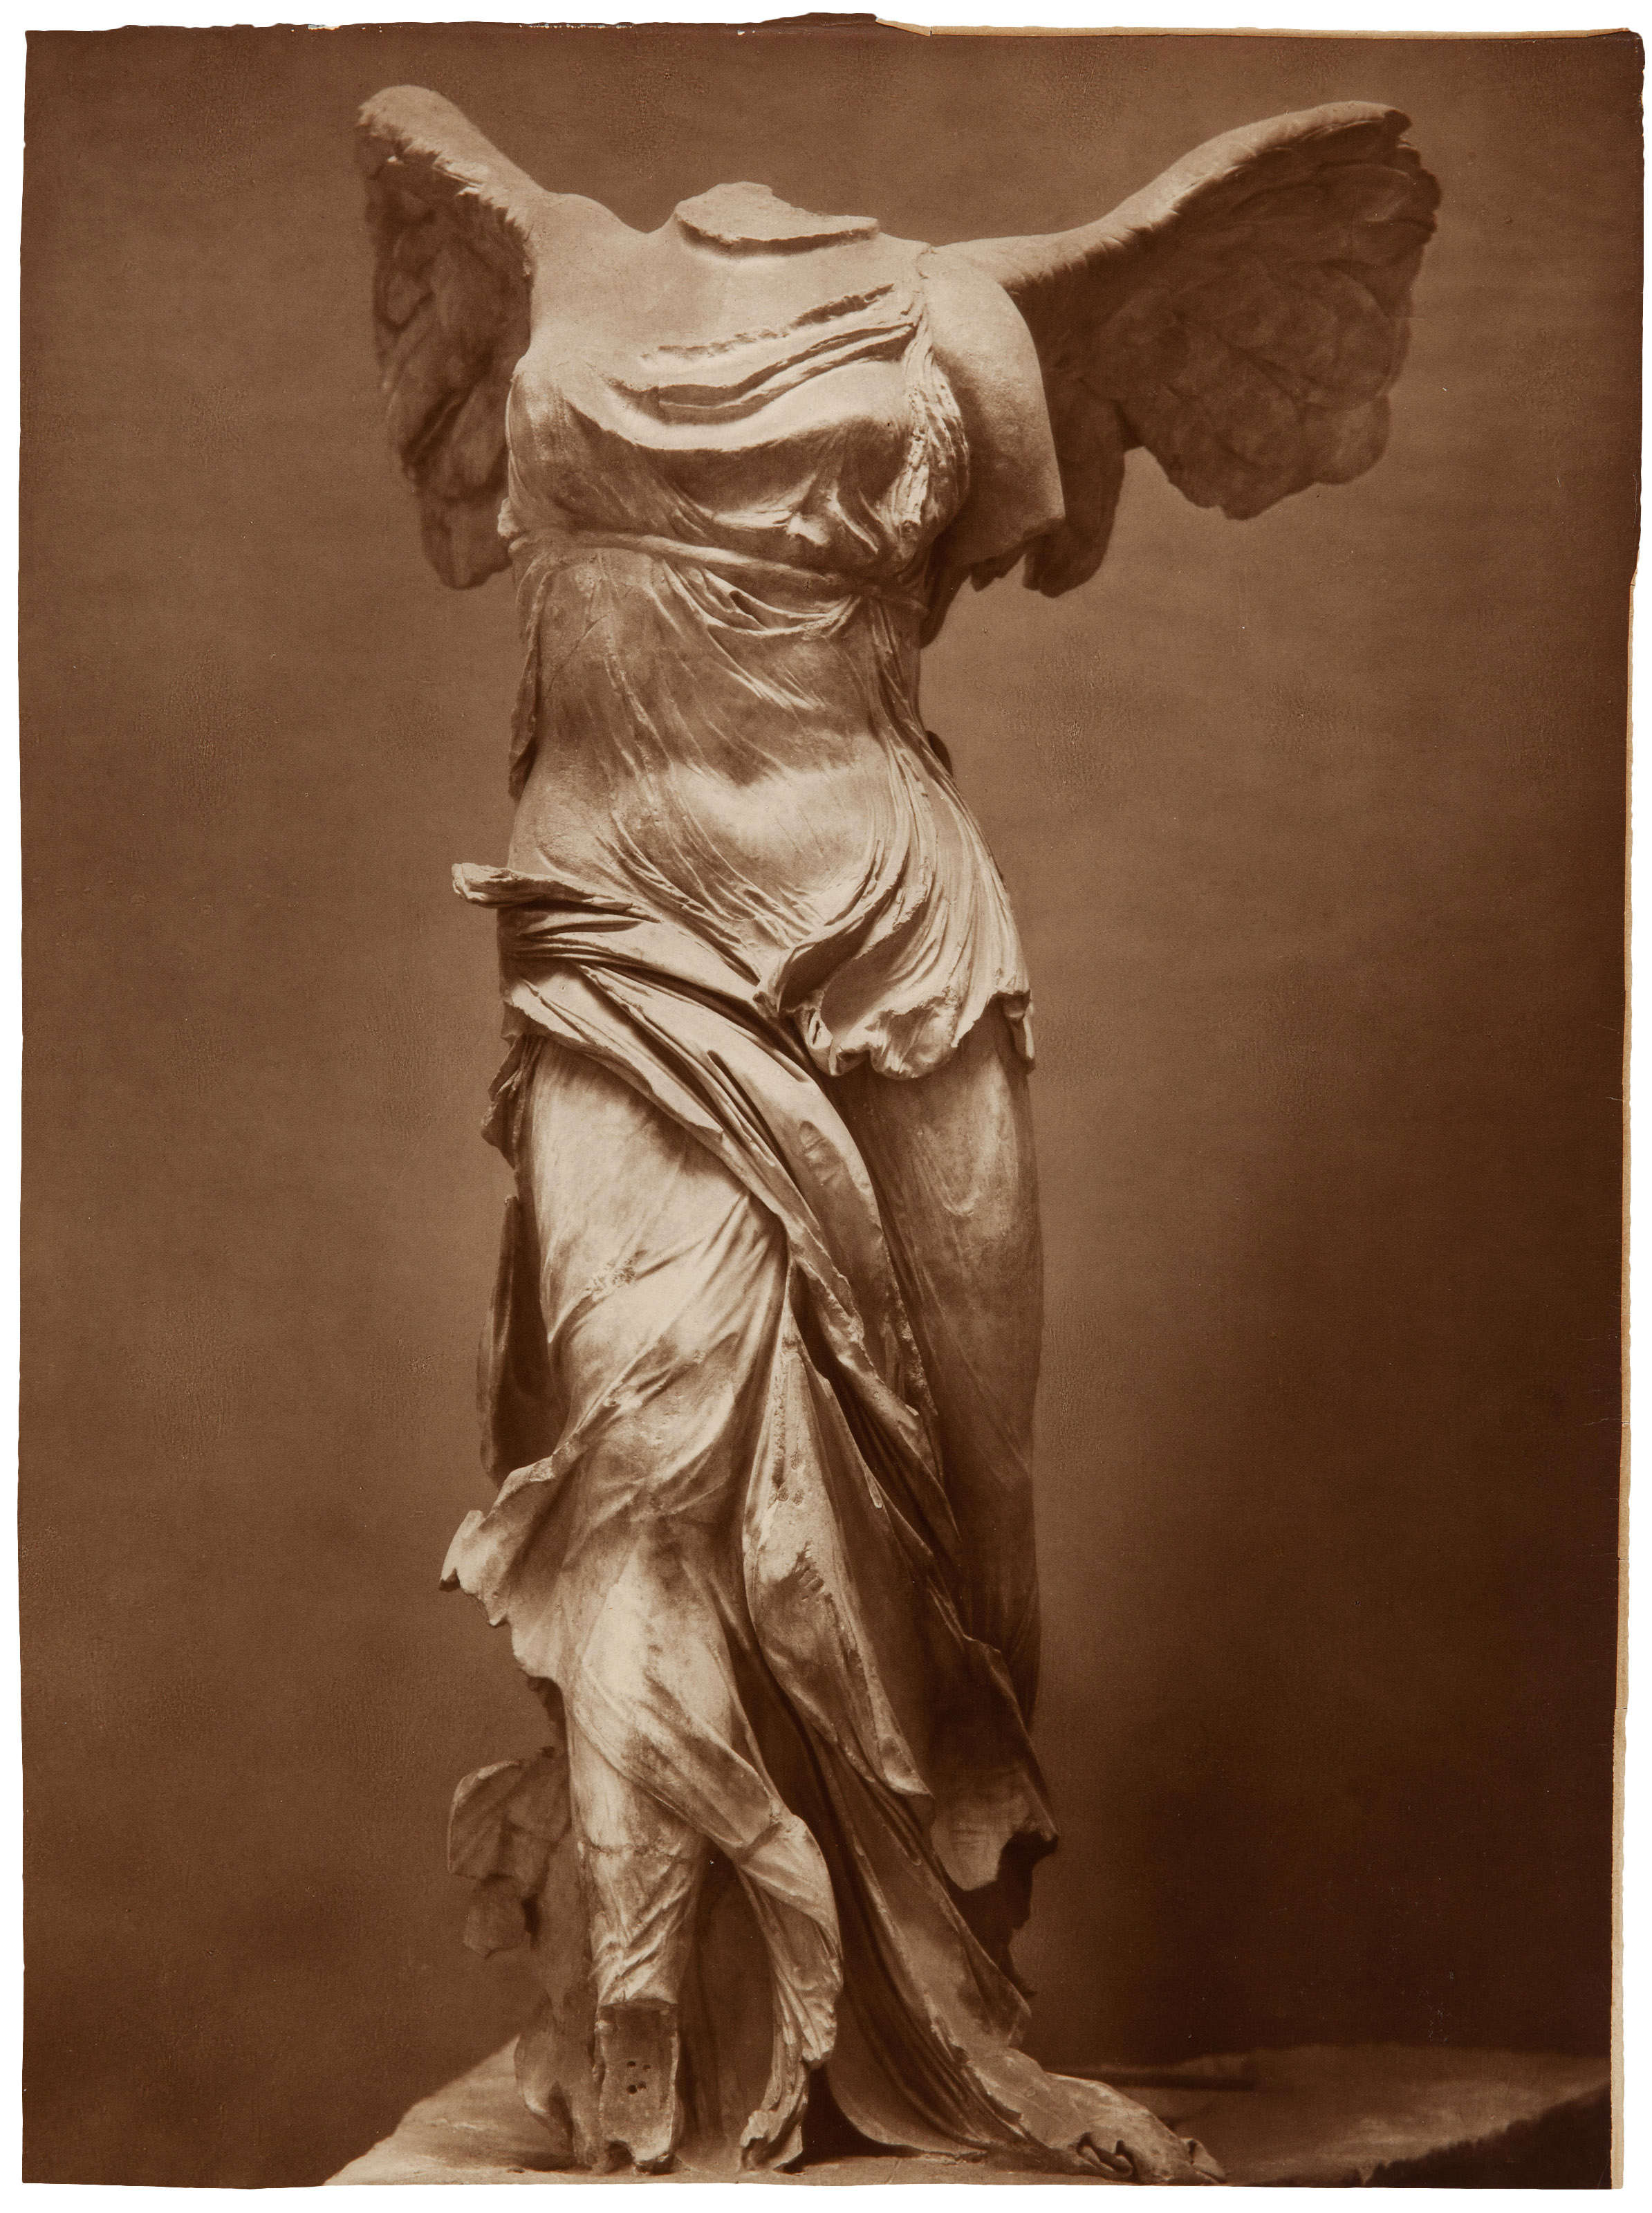 Édouard-Denis Baldus, The Winged Victory of Samothrace, circa 1855. The Louvre.